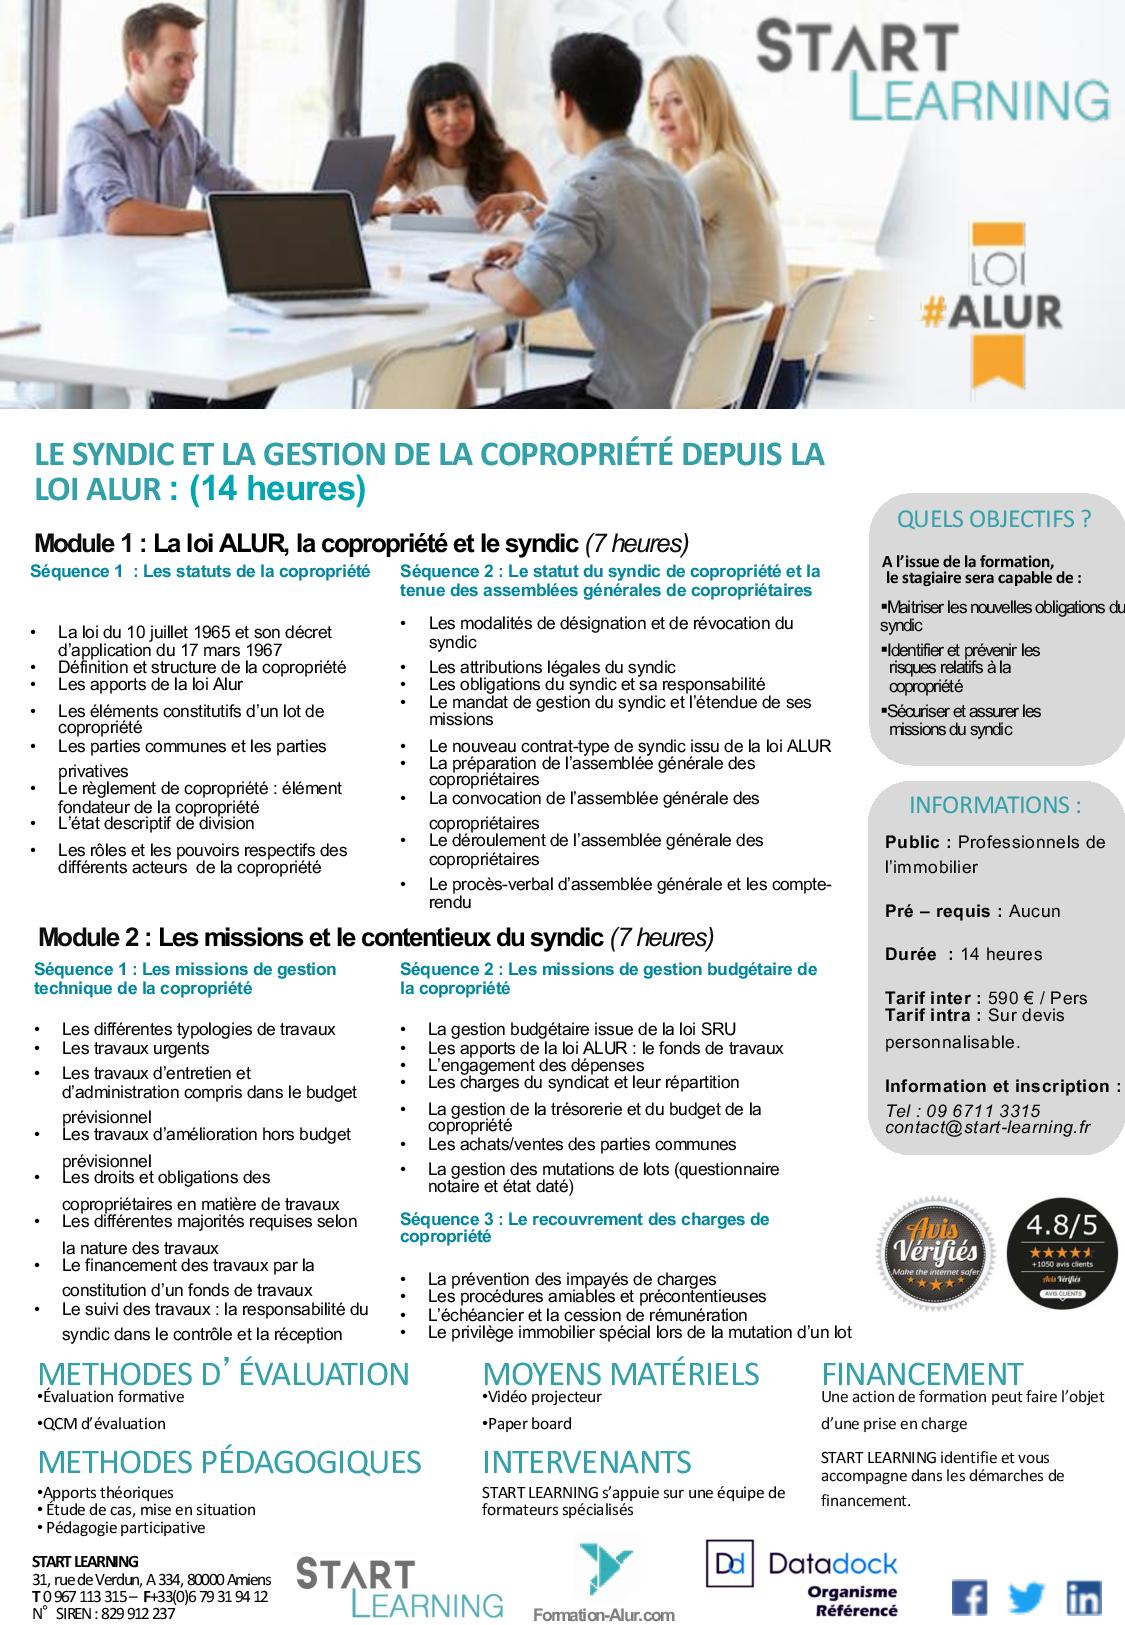 Programme Formation alur agent immobilier - Syndic (2J)